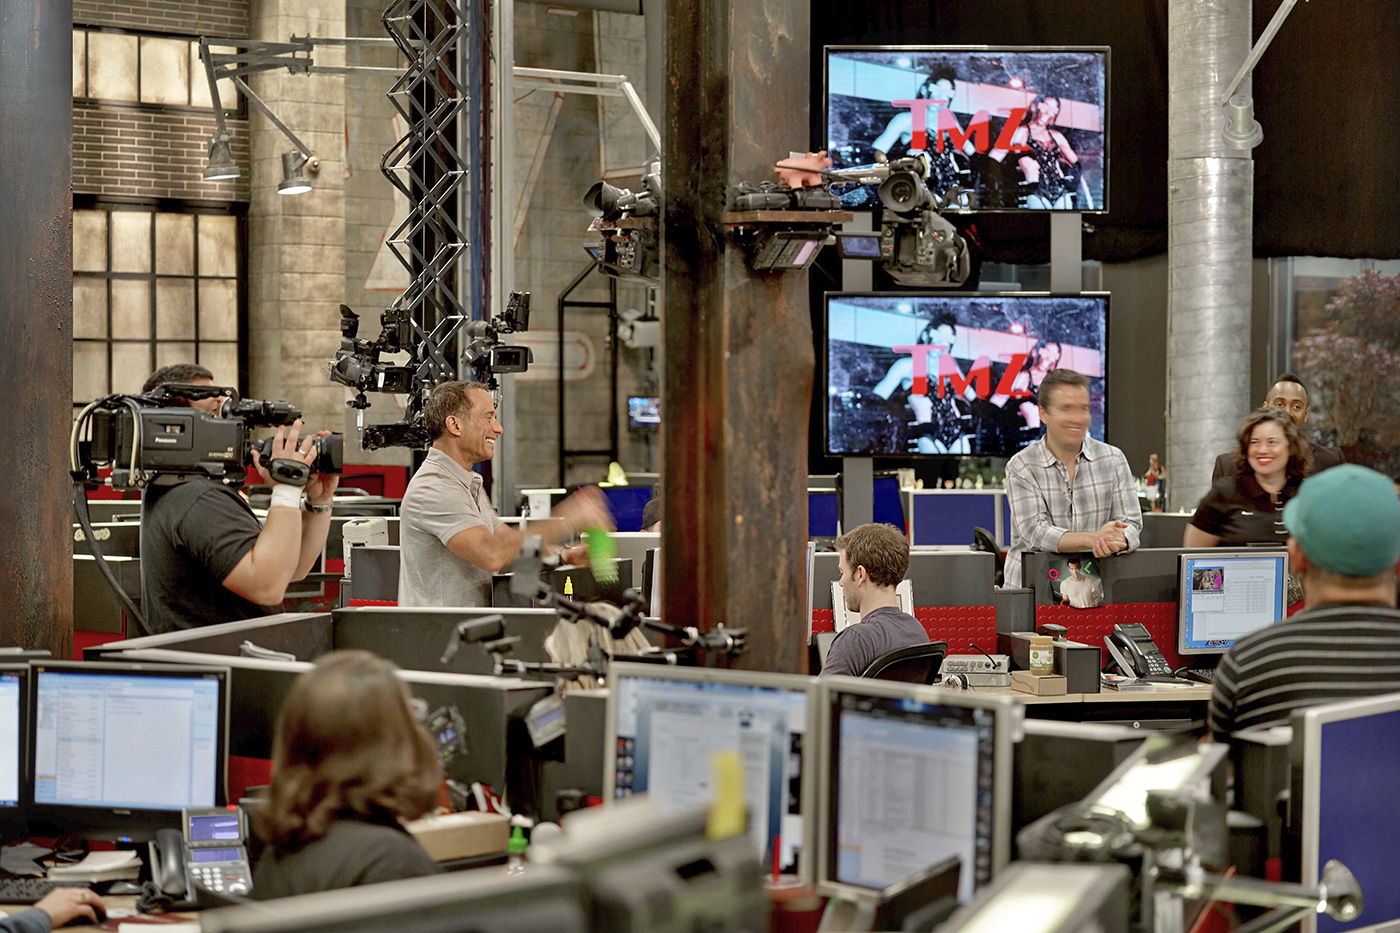 Take a tour of tmz 39 s stylish headquarters officelovin for Tmz tours in los angeles